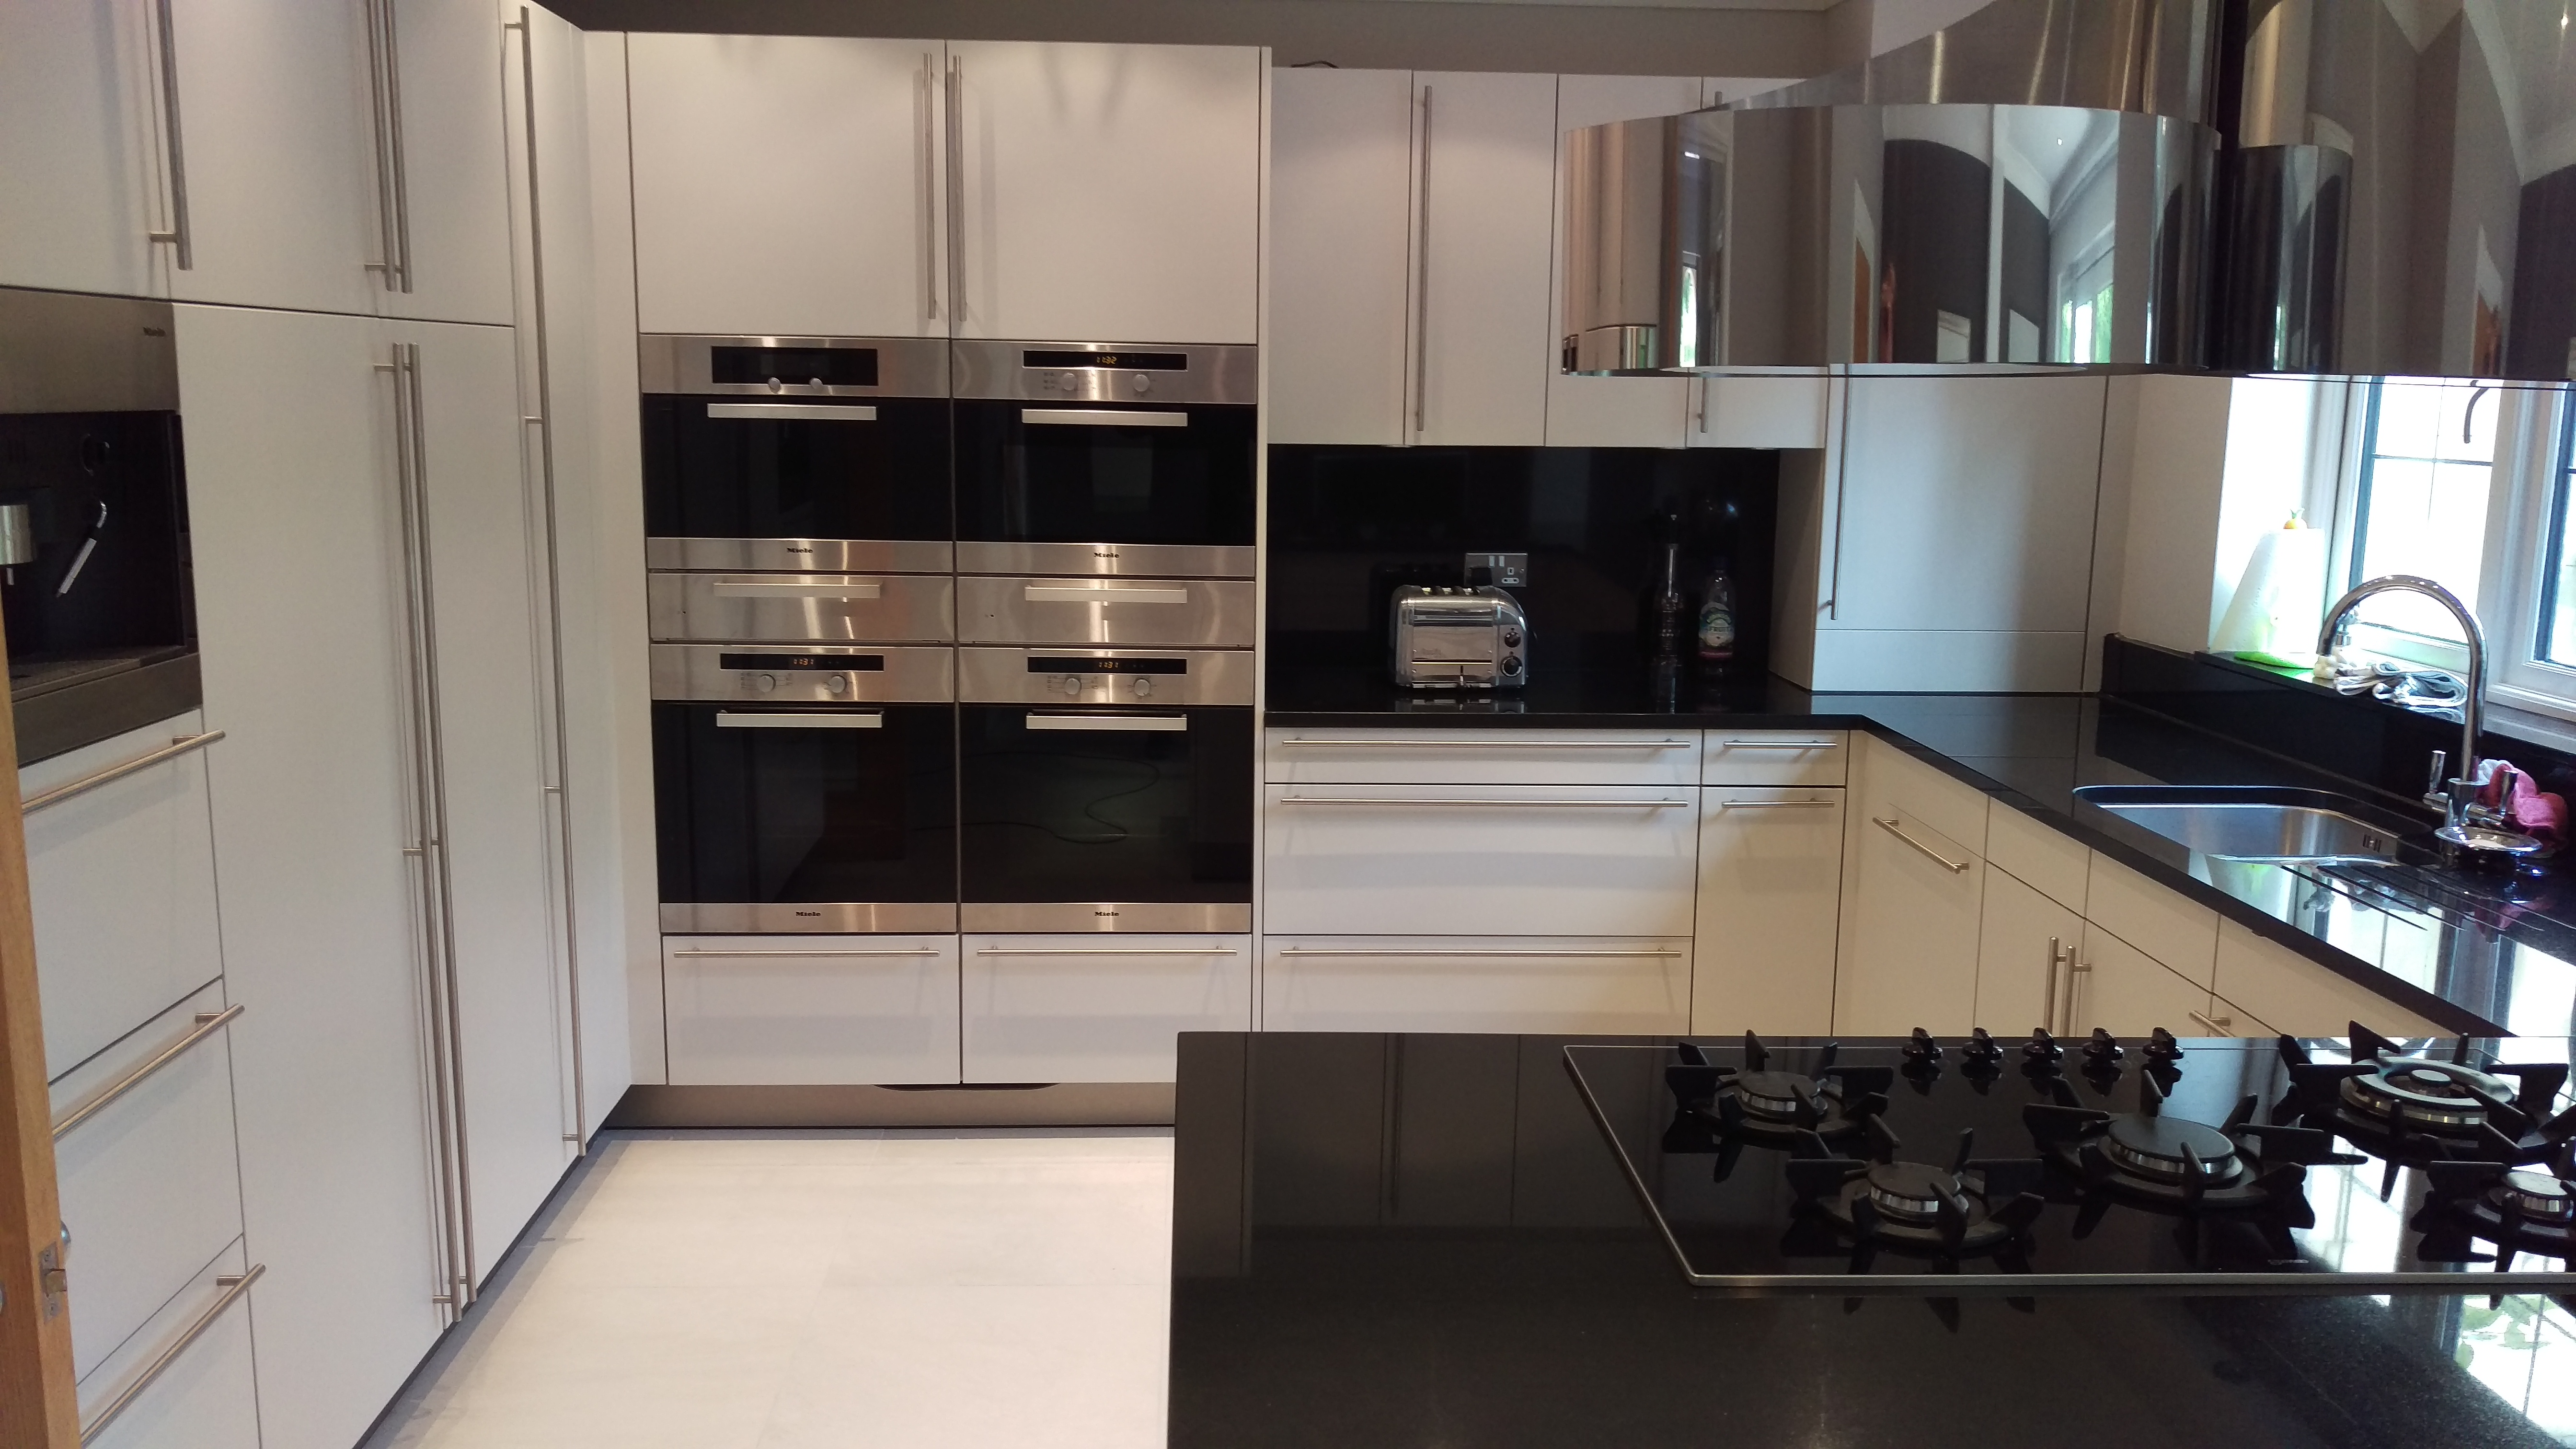 Küche Miele Miele Kitchen Alderley Edge Cheshire | Js Decor